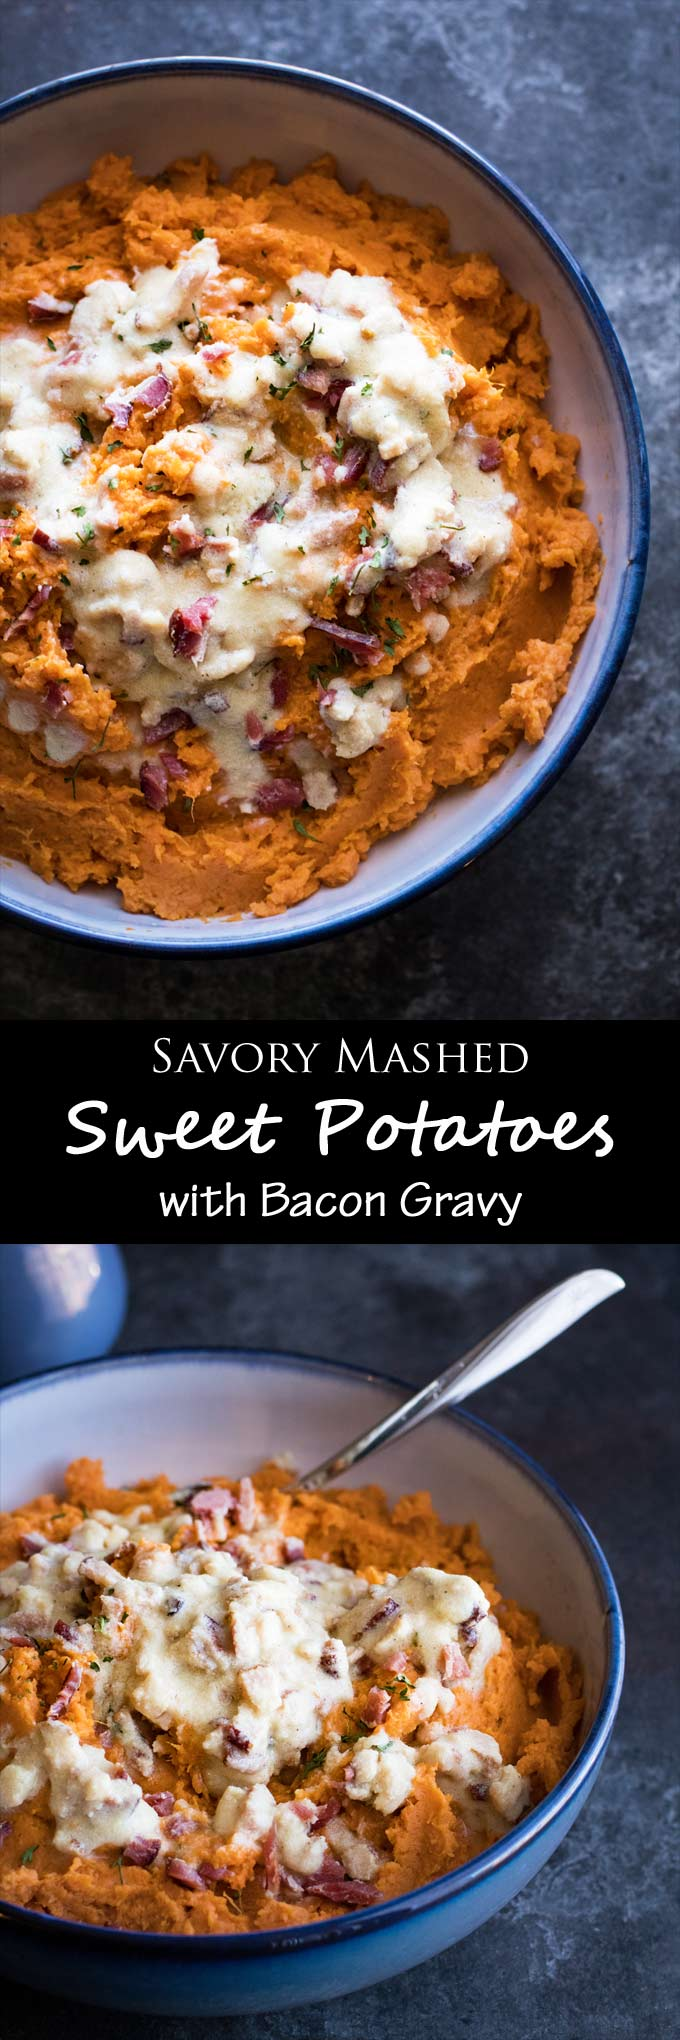 Savory Mashed Sweet Potatoes with Bacon Gravy - the perfect, healthy, paleo, and gluten-free side dish!